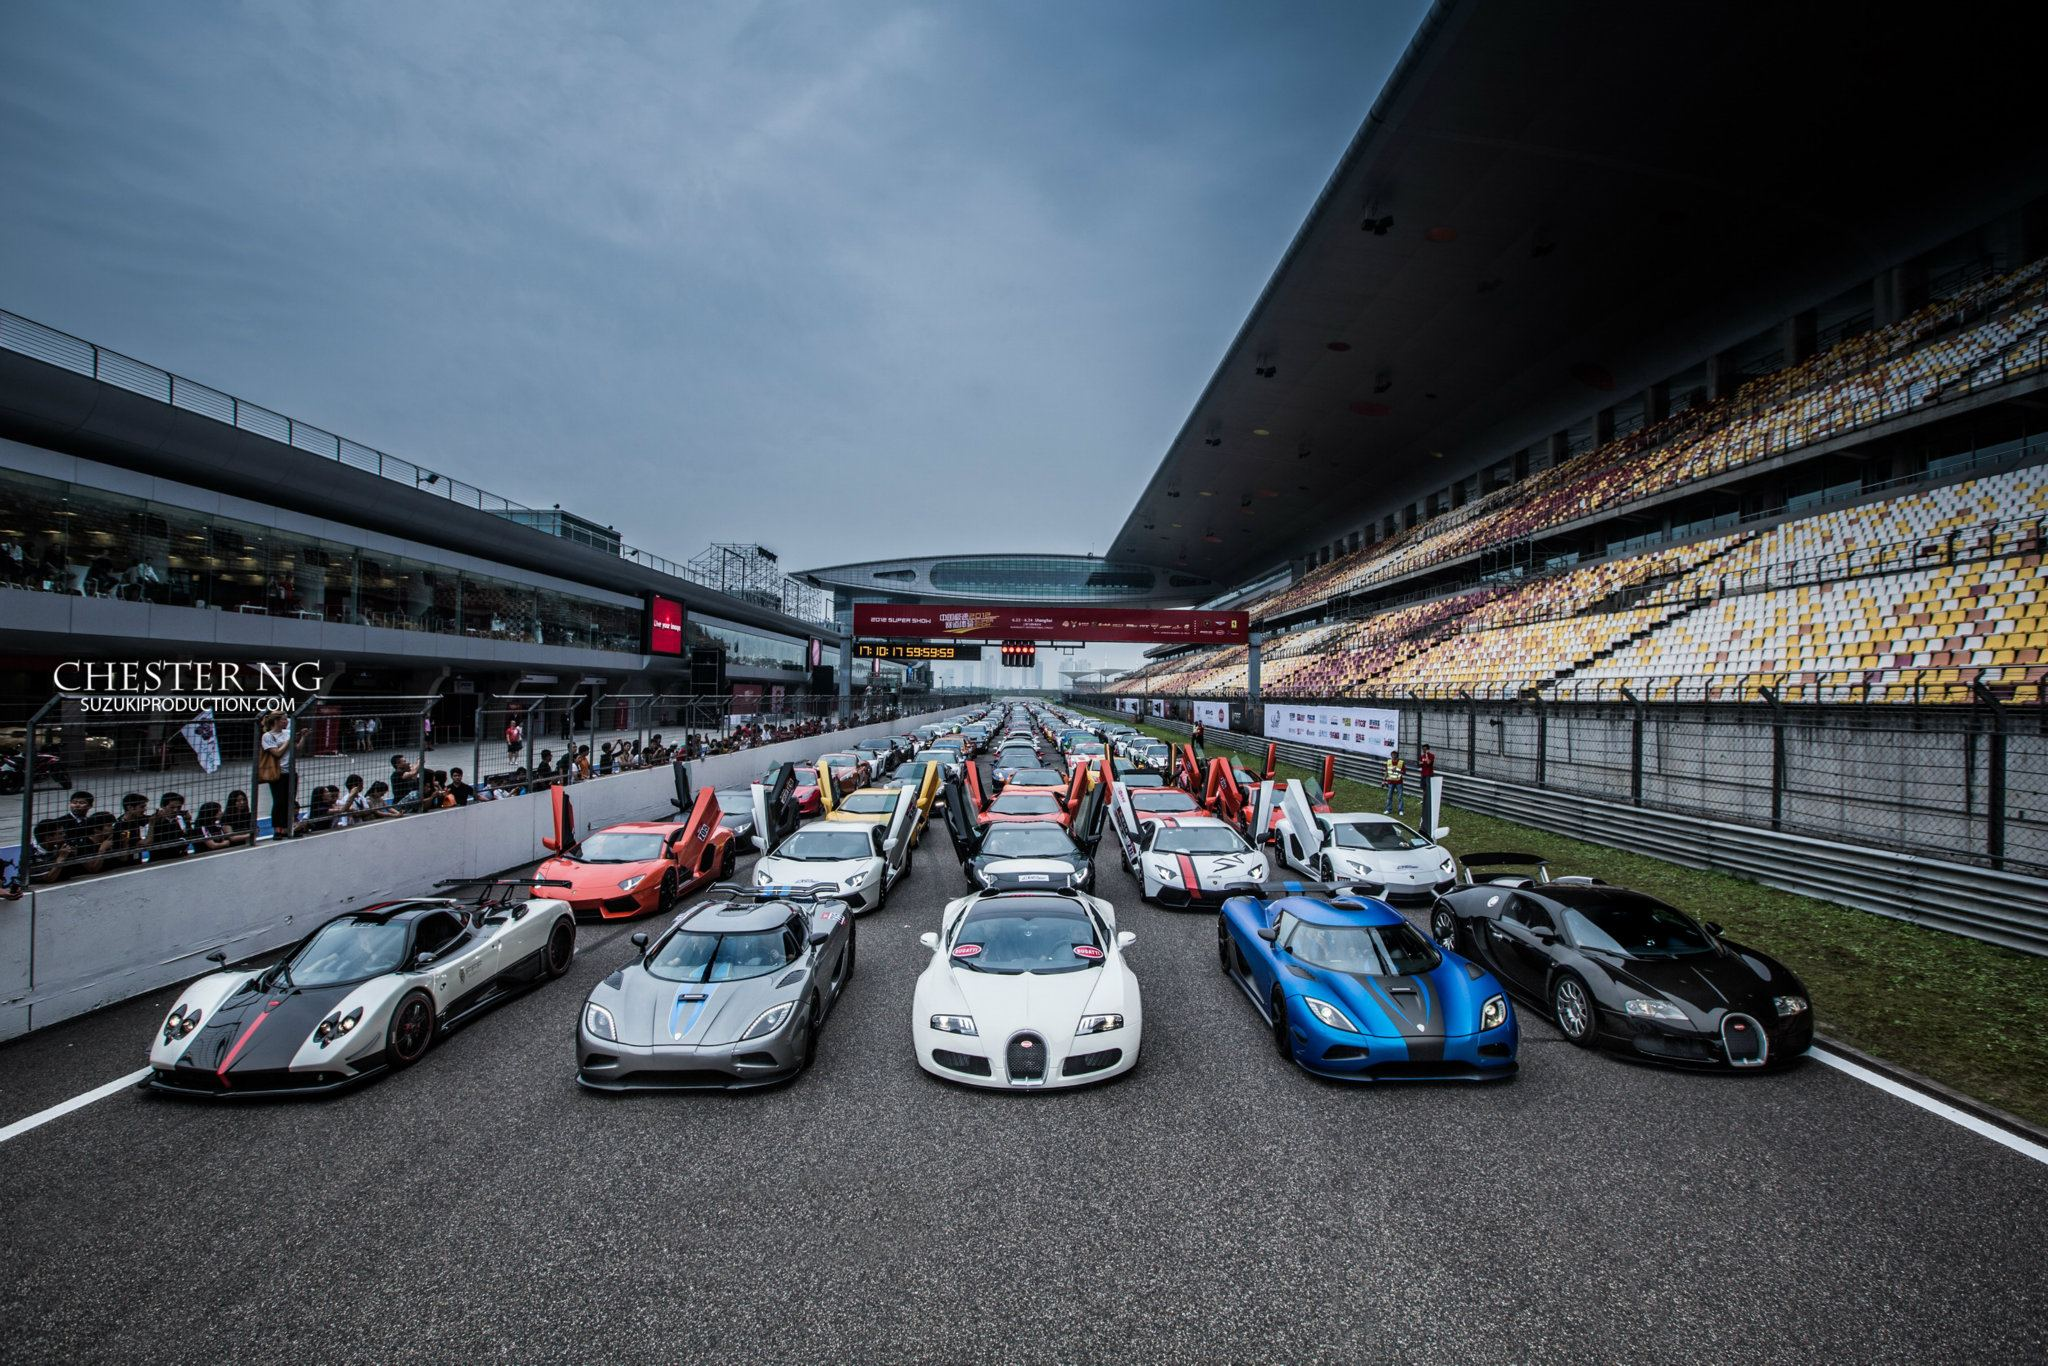 World's Most Exotic Supercars Take to the Track at Once: Video